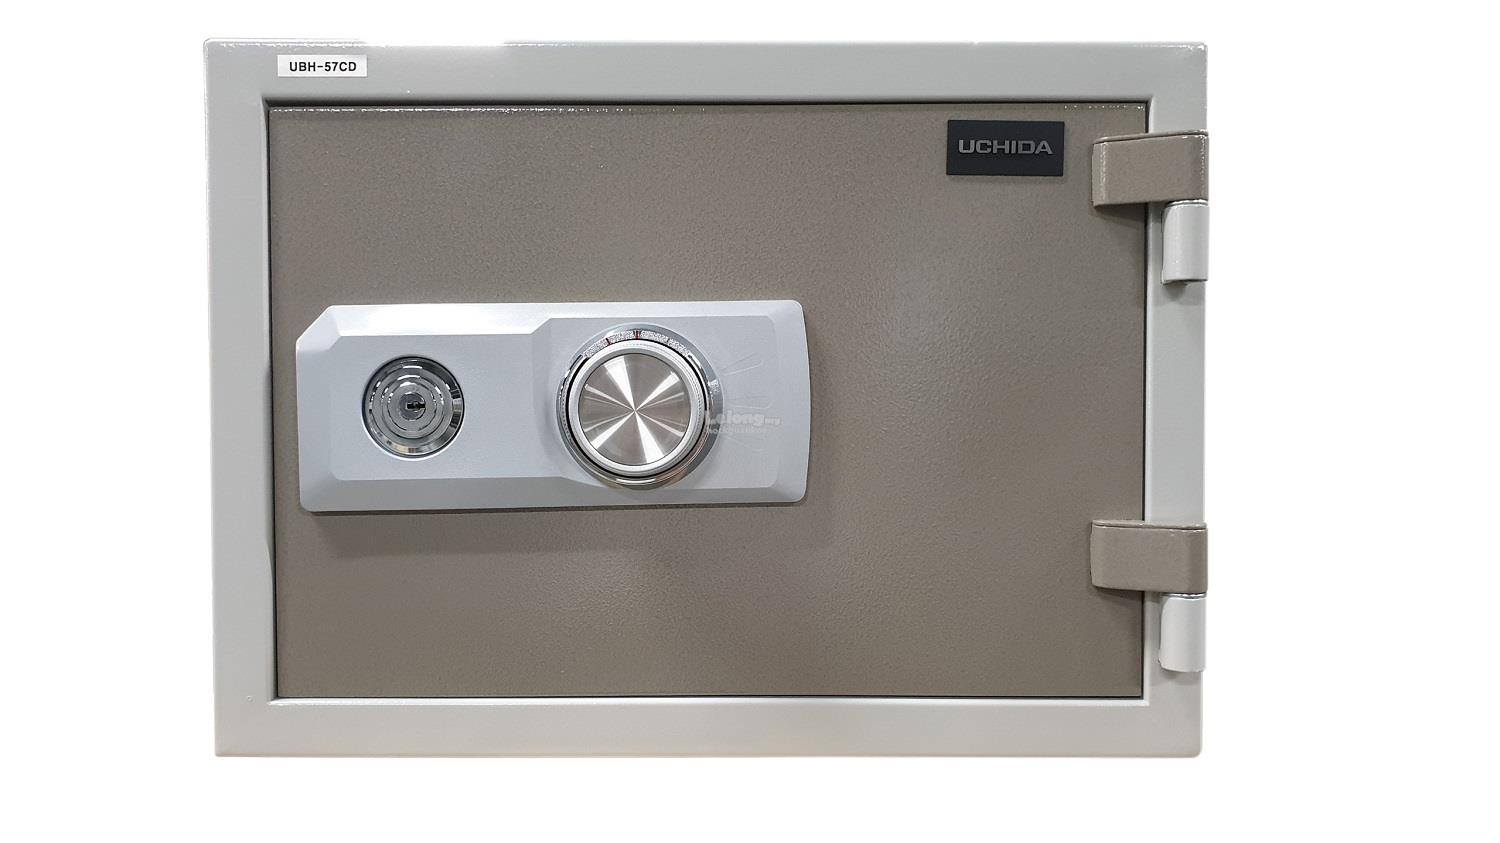 UCHIDA Fire Resistant Safe Box (UBH-57CD)_57KG